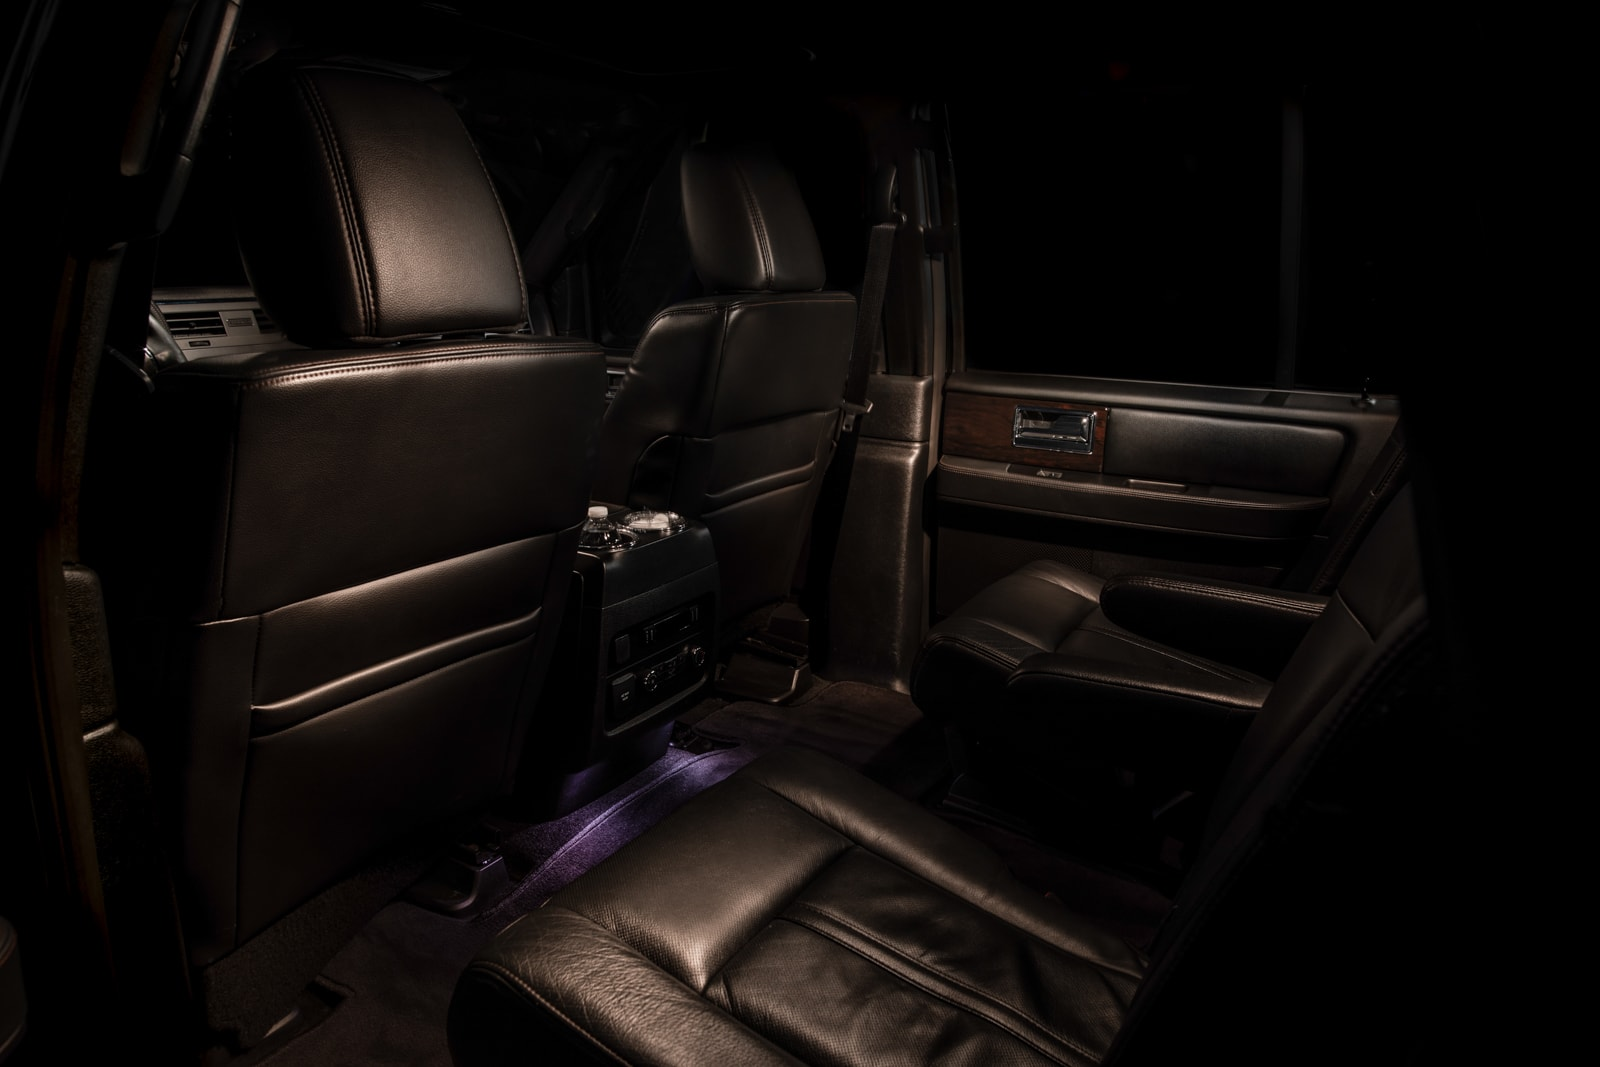 Lincoln Navigator back, leather interior showing a large amount of leg room which is an important part of a luxury limo rental.